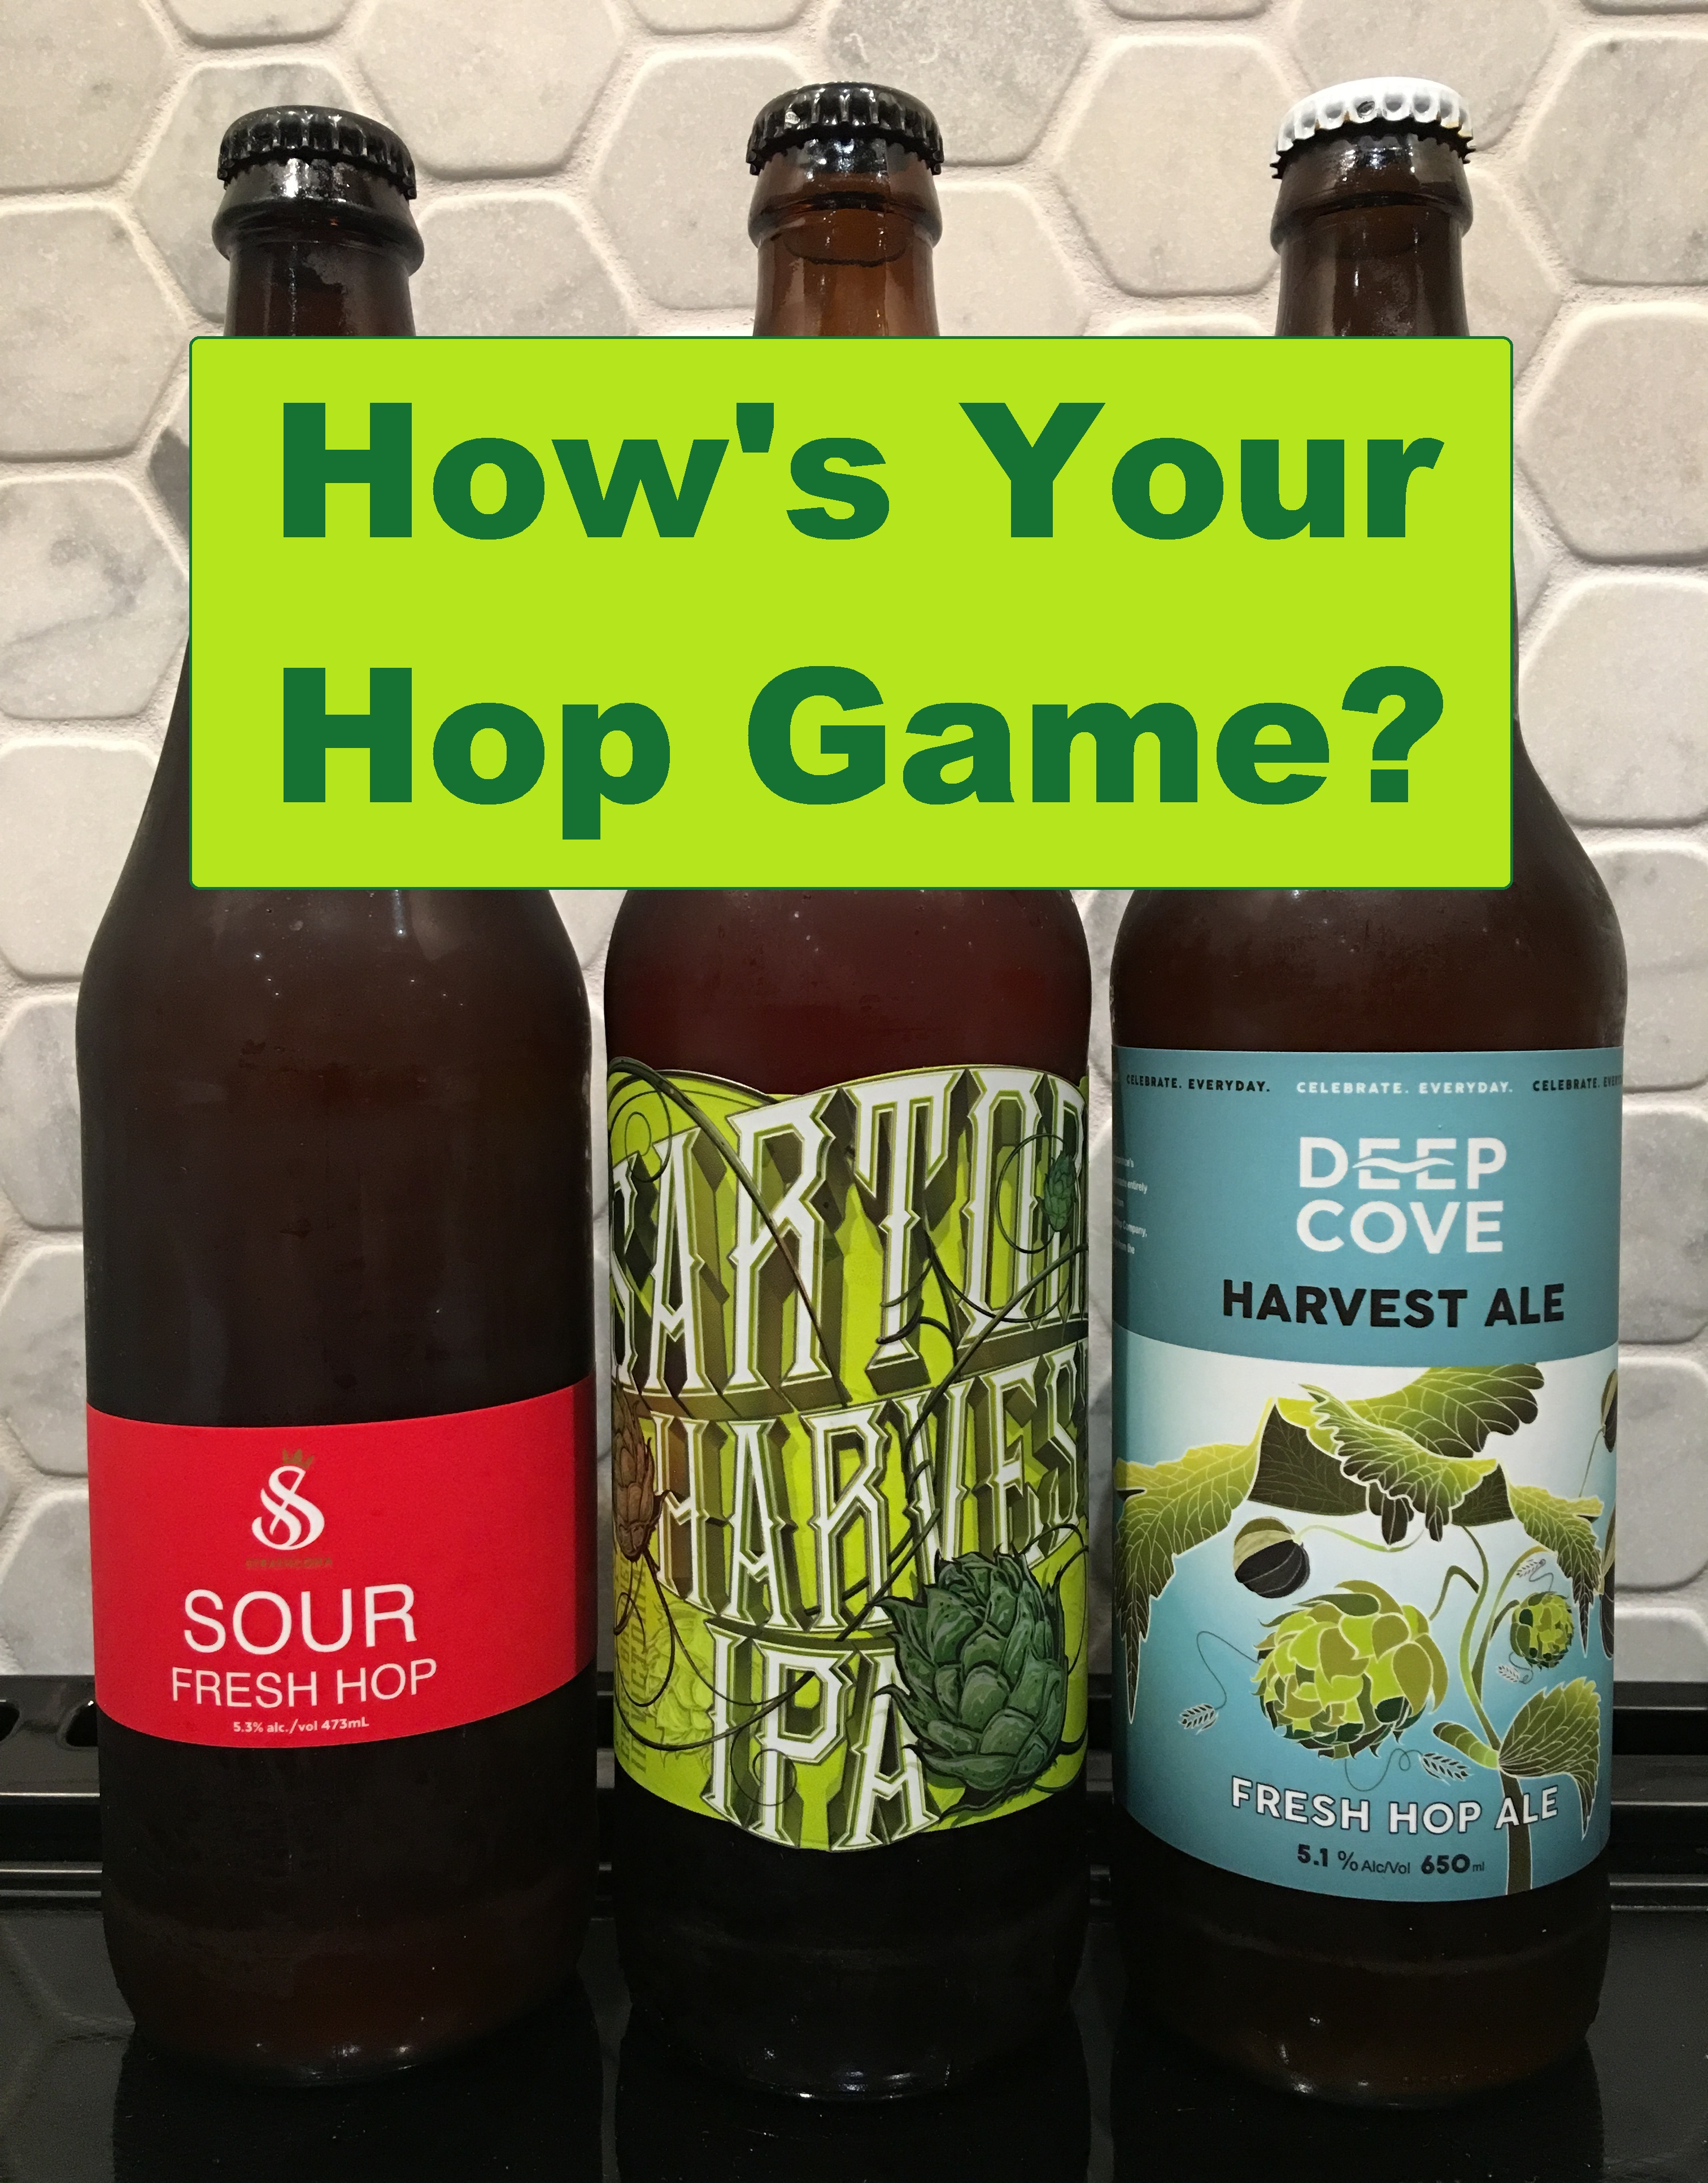 How's Your Hop Game?